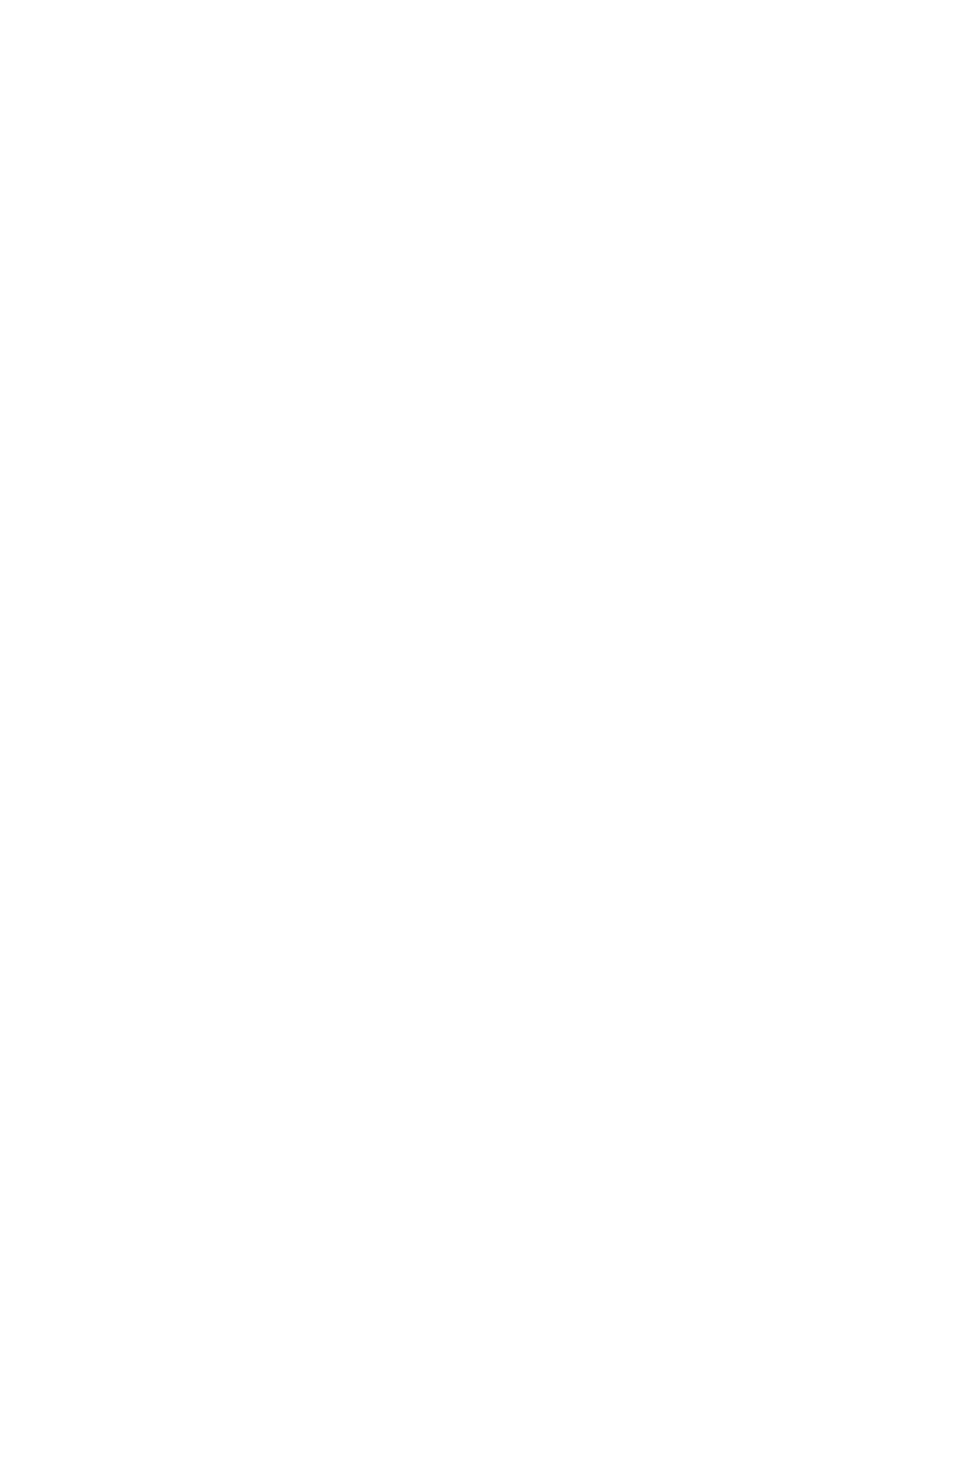 Extension Cord Use Electrical Power Assembly Instructions George